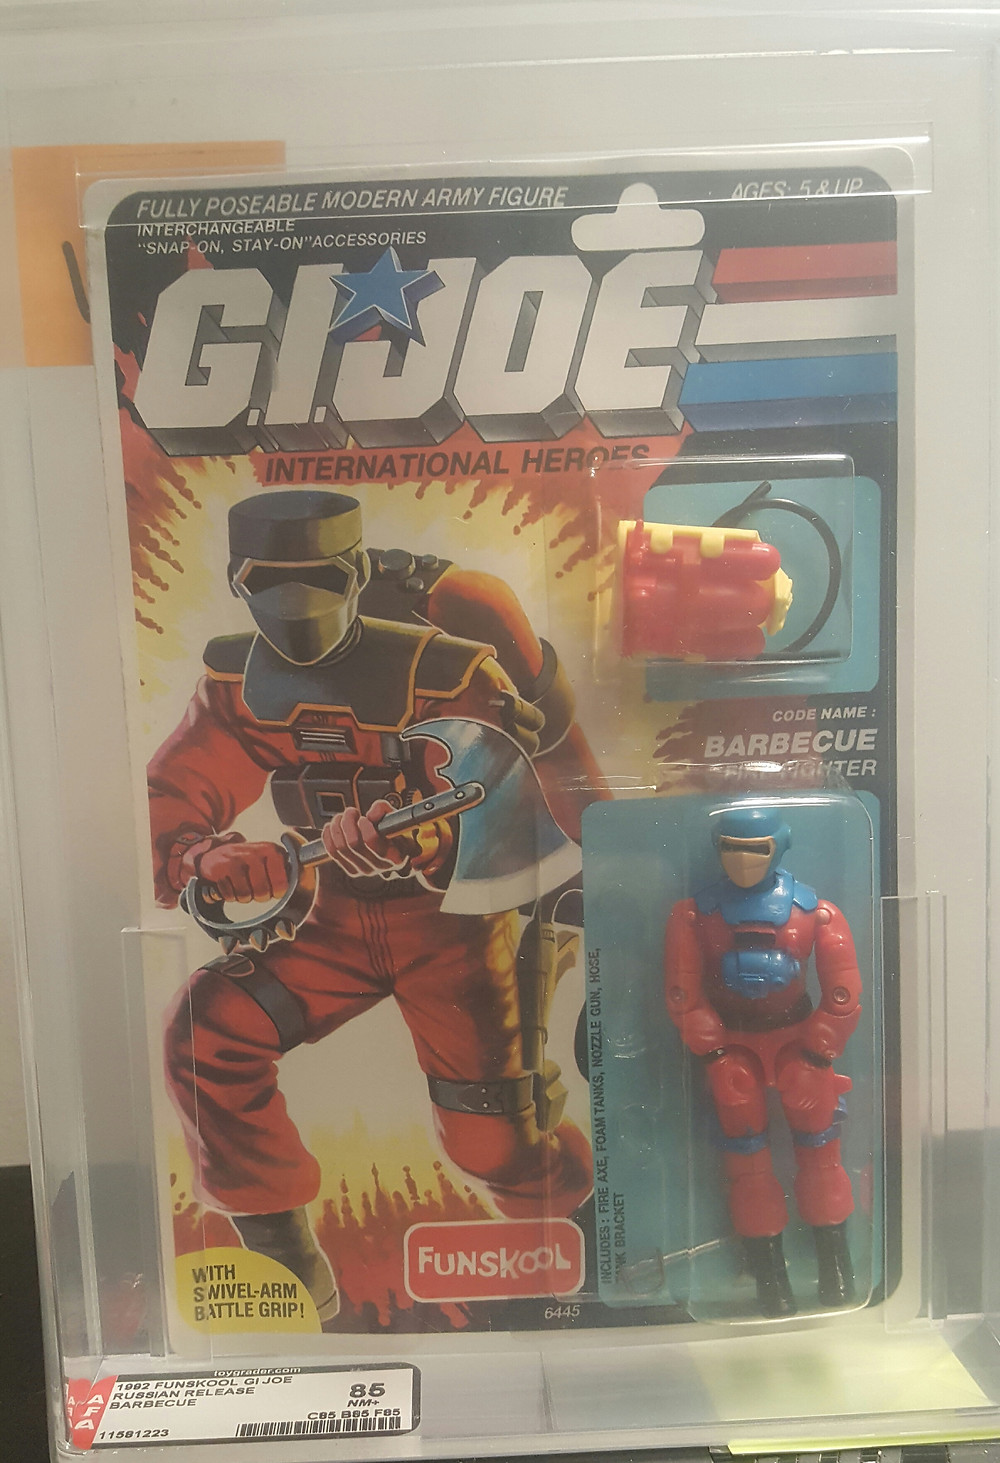 Toys-Action Figures Http://www.valleygoto.com